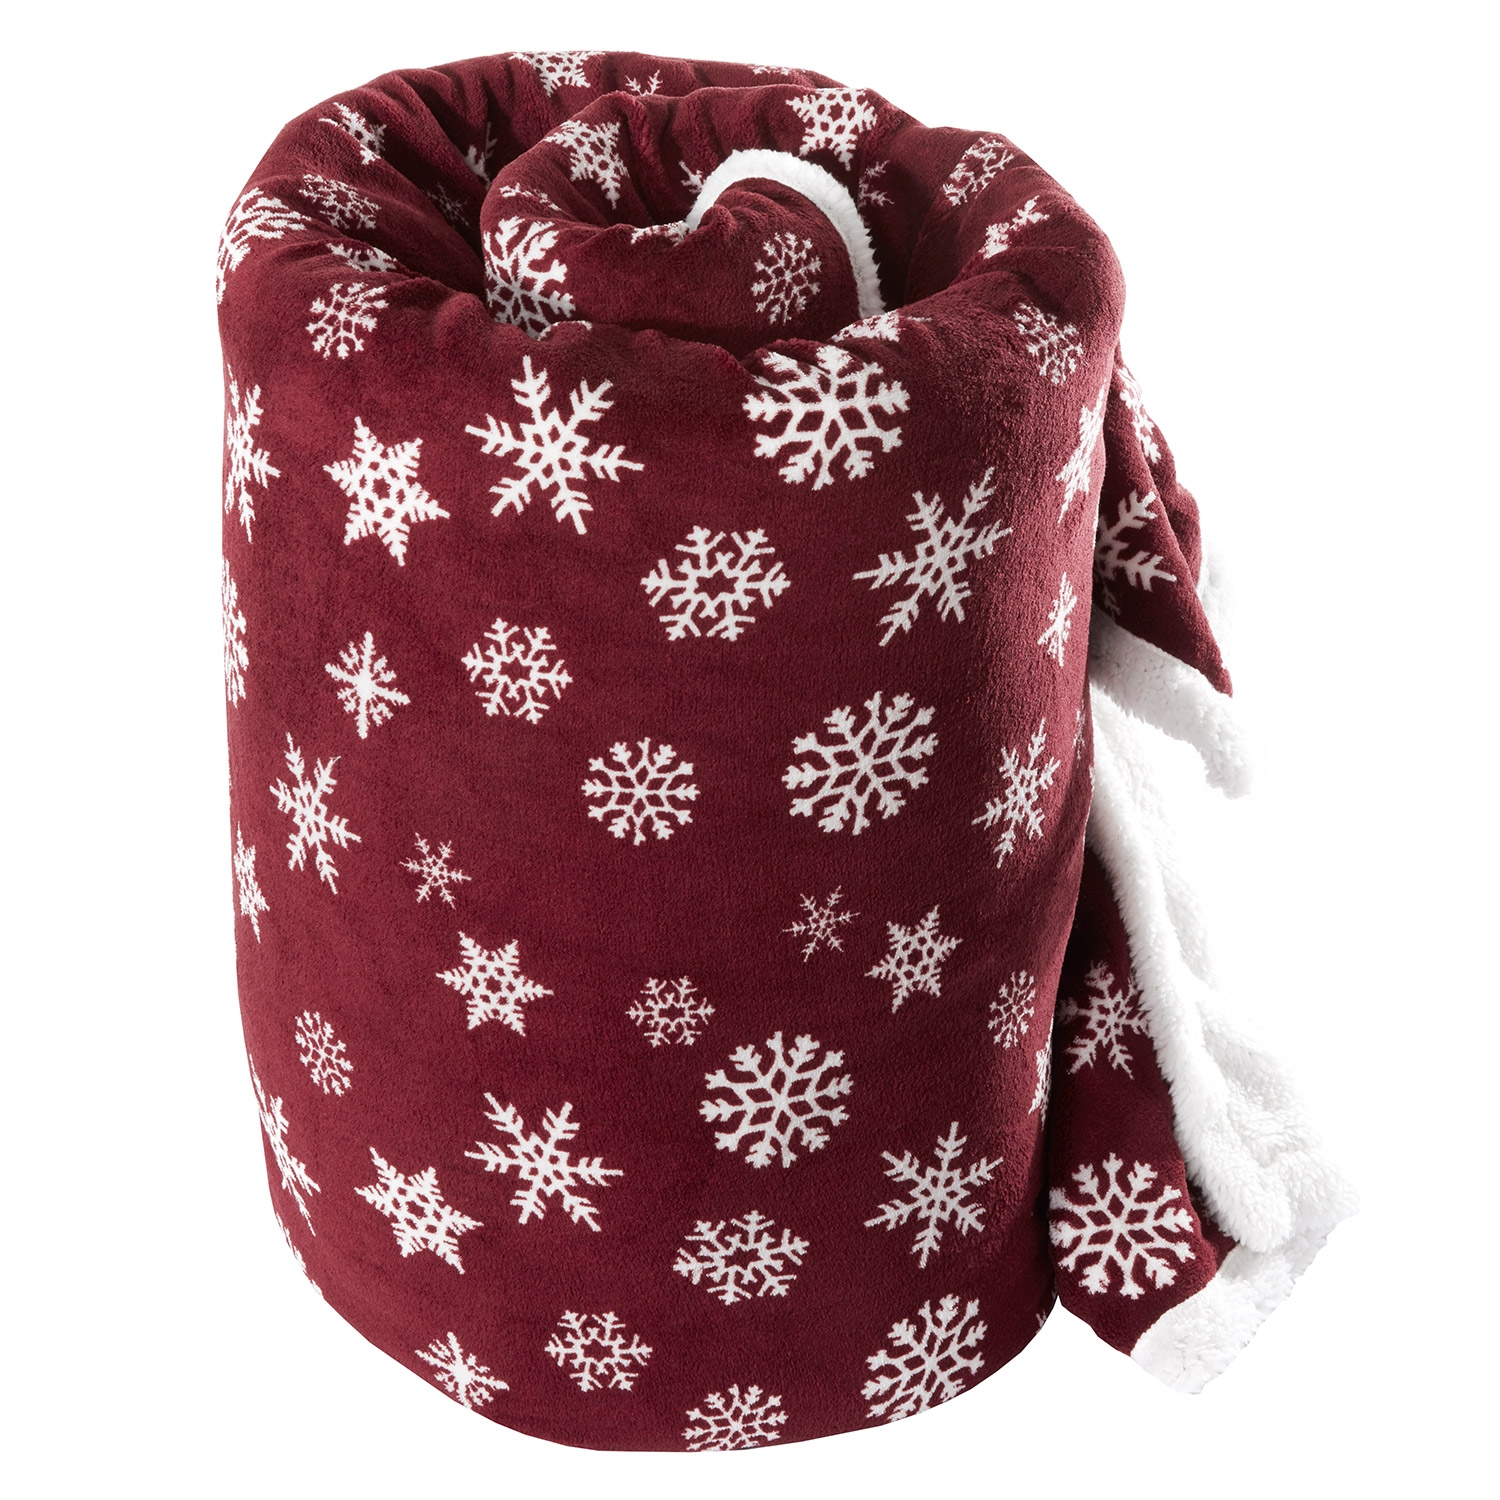 Snowflake Mulberry Fleece Throw